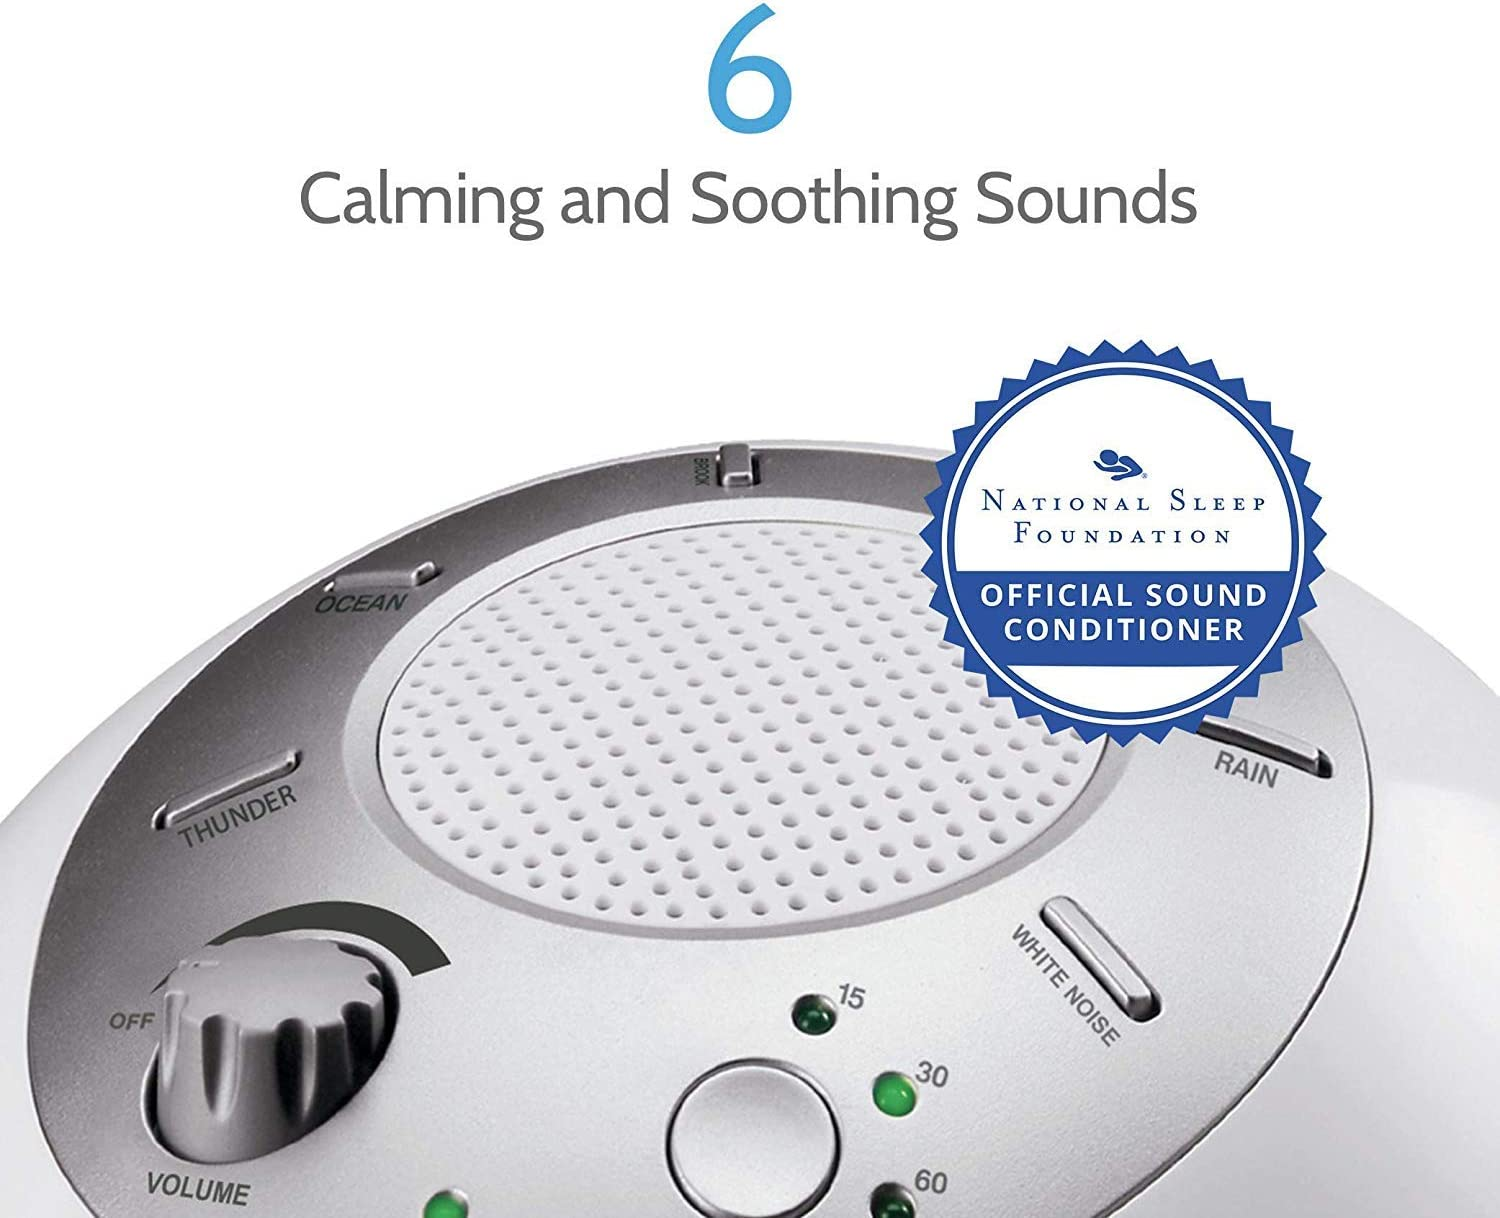 White Noise Sound Machine Portable Sleep Therapy for Home, Office, Baby Travel 6 Relaxing Soothing Nature Sounds, Battery or Adapter Charging Options, Auto-Off Timer HoMedics